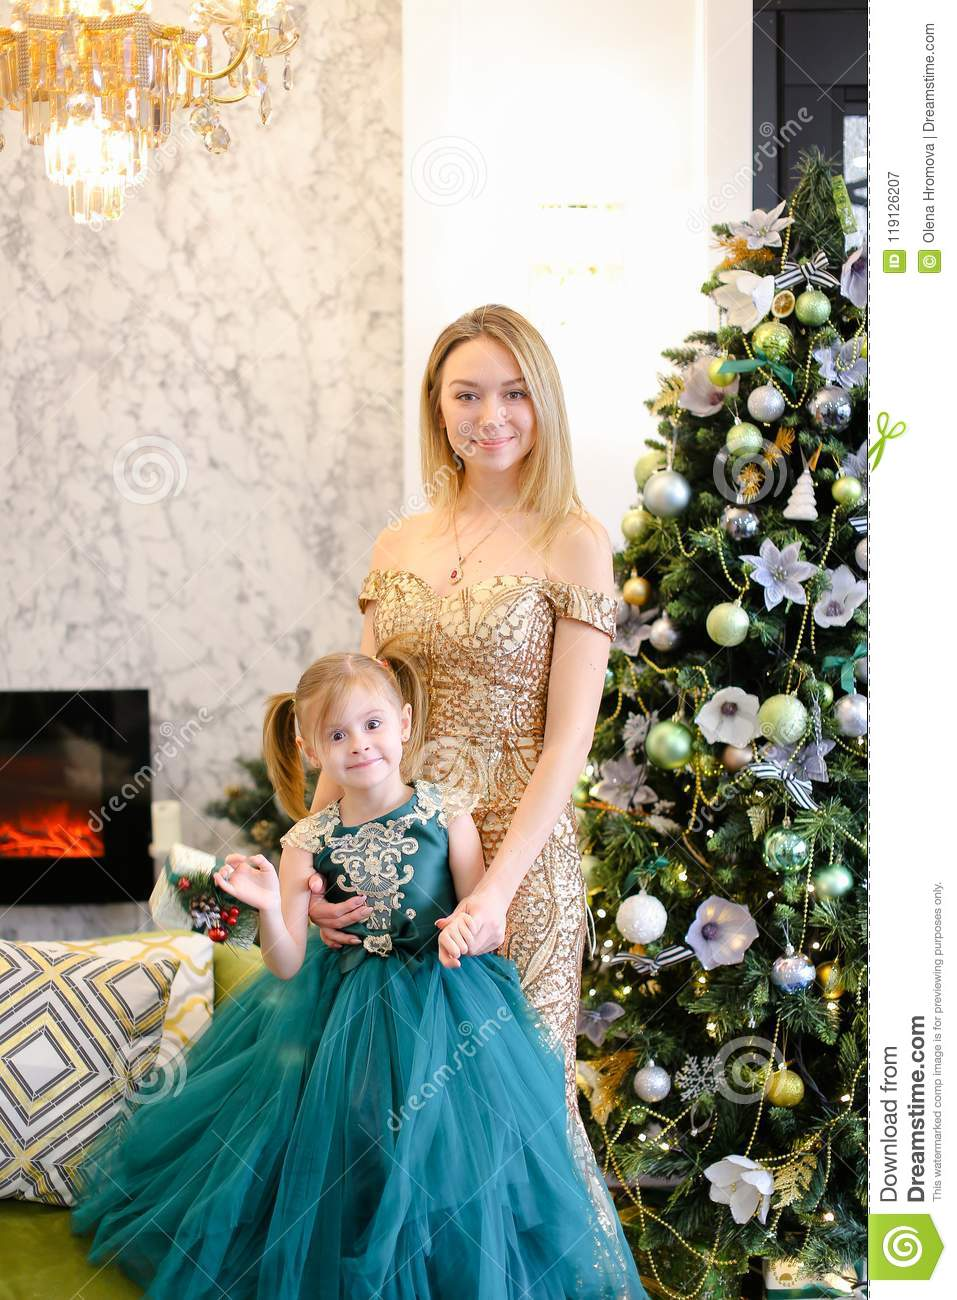 young blonde mother and little daughter wearing dresses standing